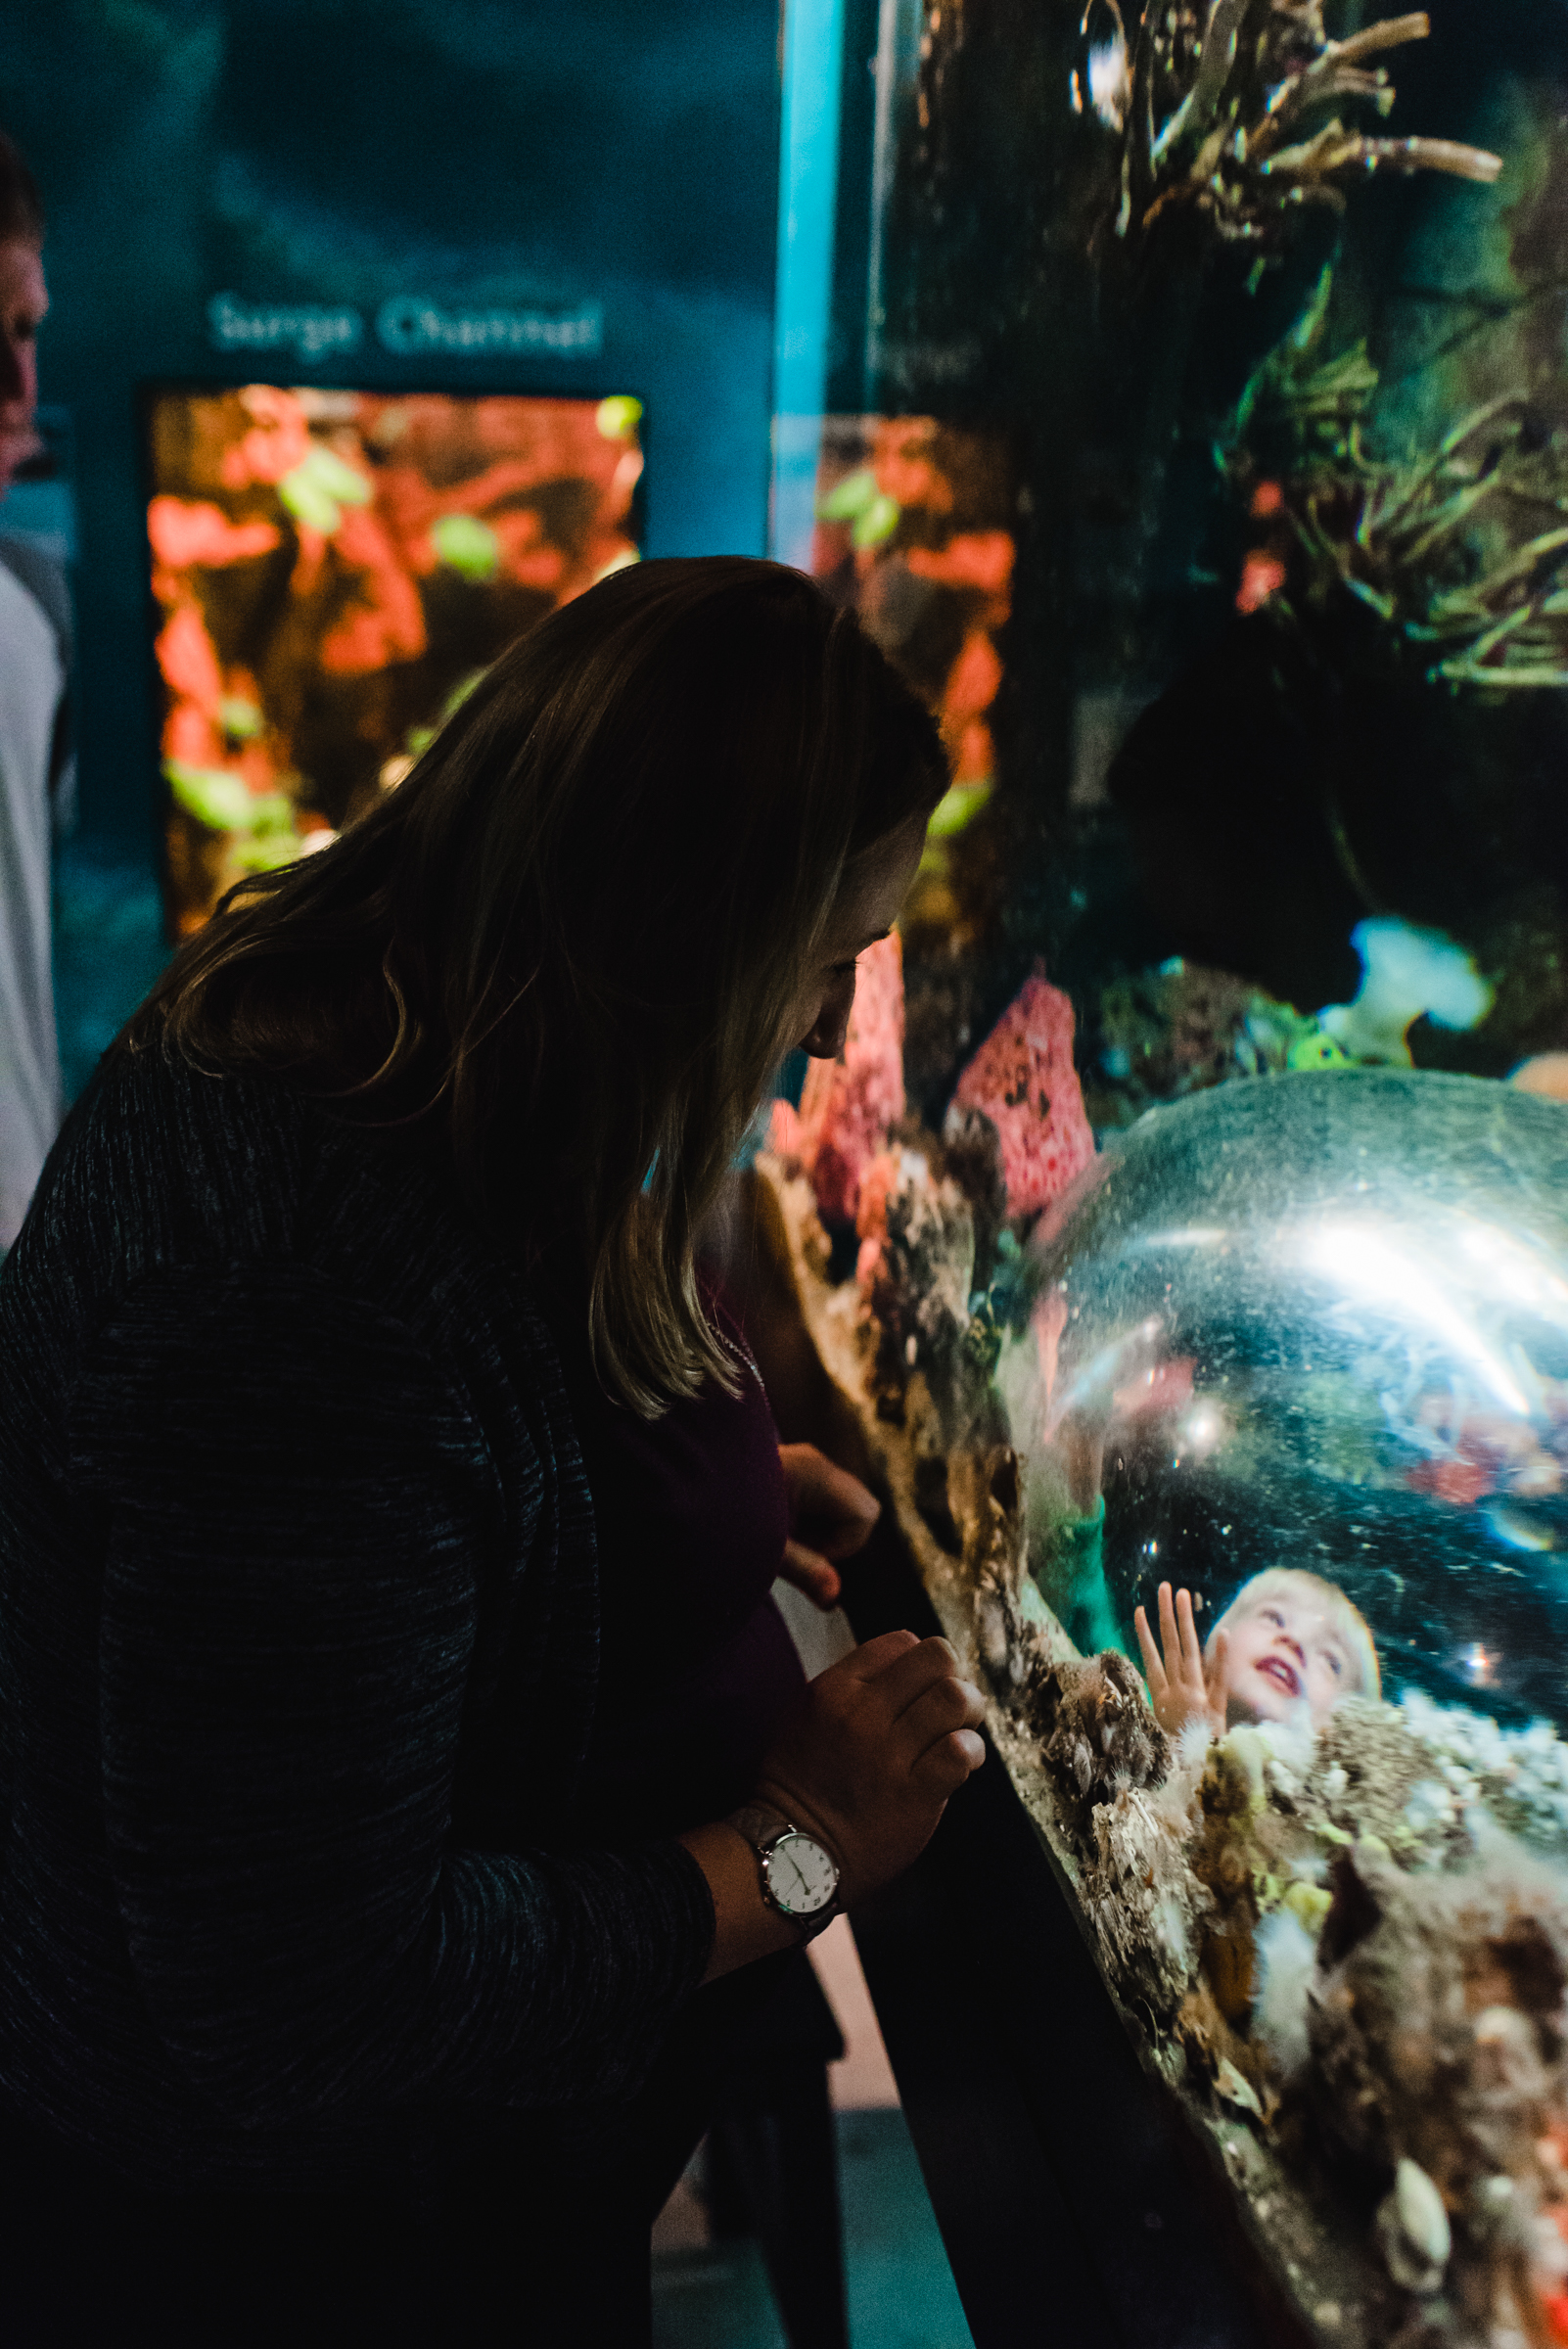 Nicola_Reiersen_Photography_Victoria_BC_Aquarium_Maternity_Session (62).jpg